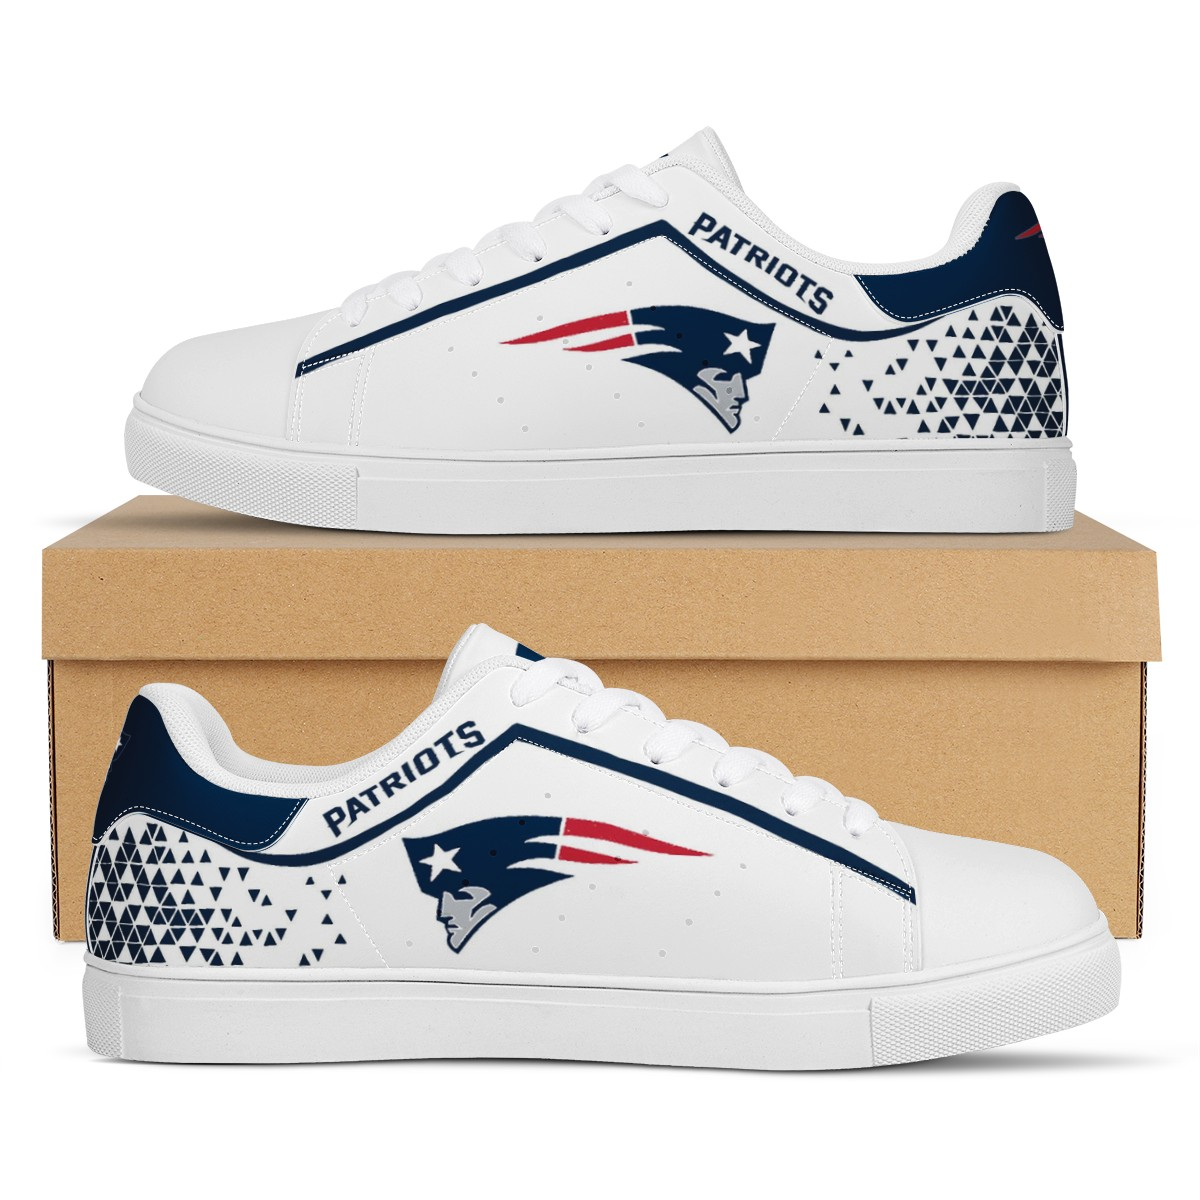 Women's New England Patriots Low Top Leather Sneakers 003